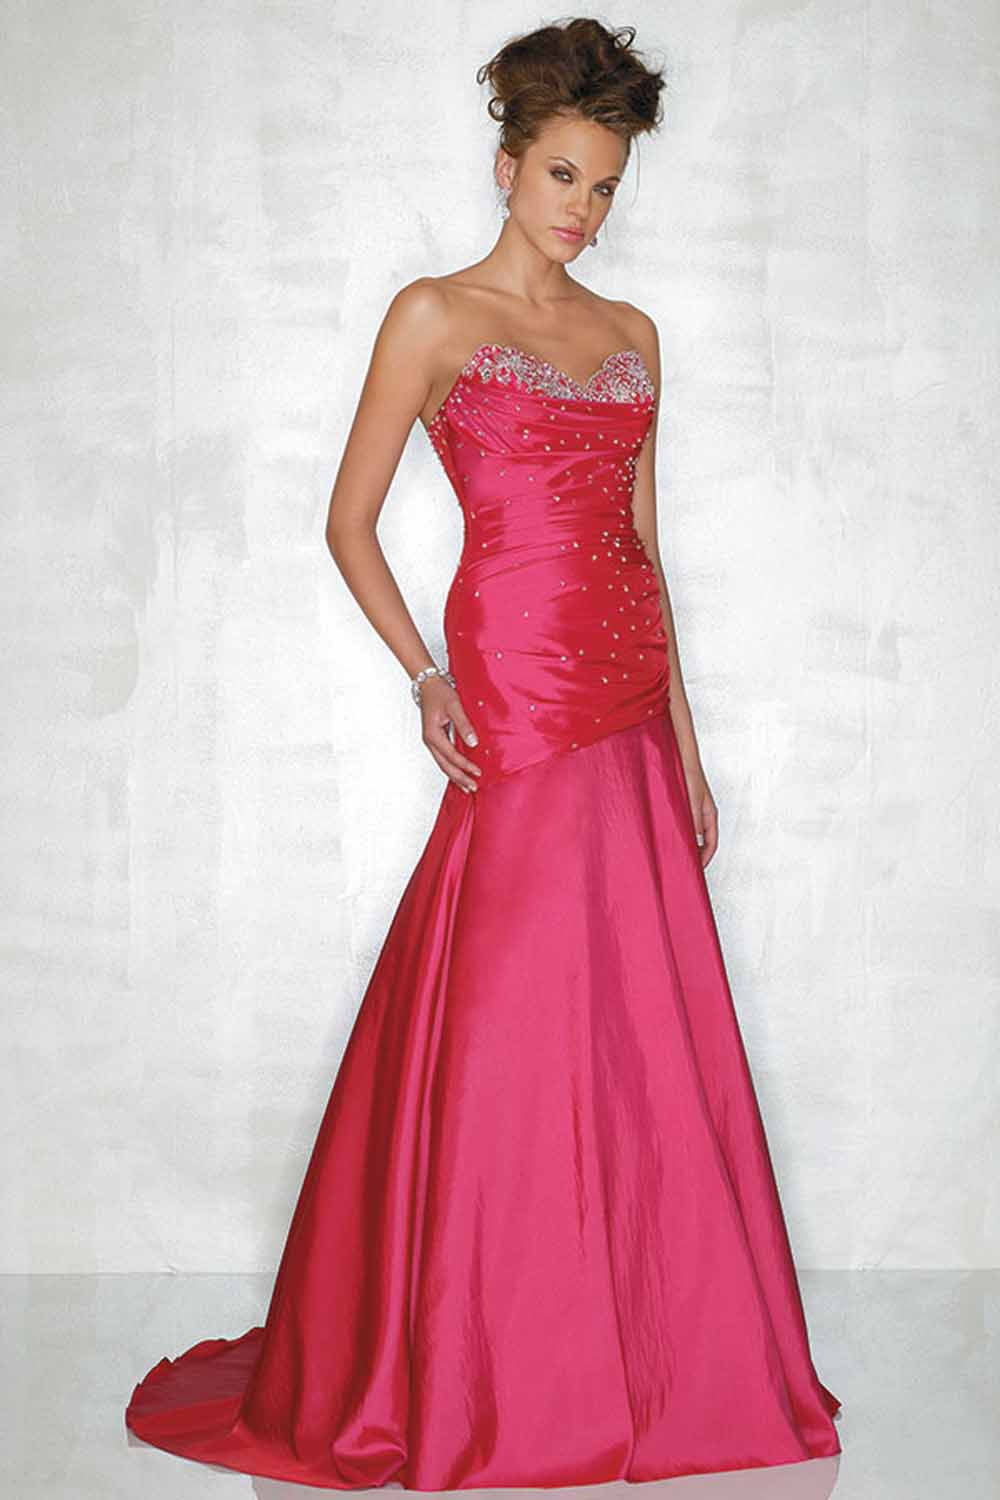 Create Your Own Prom Dress